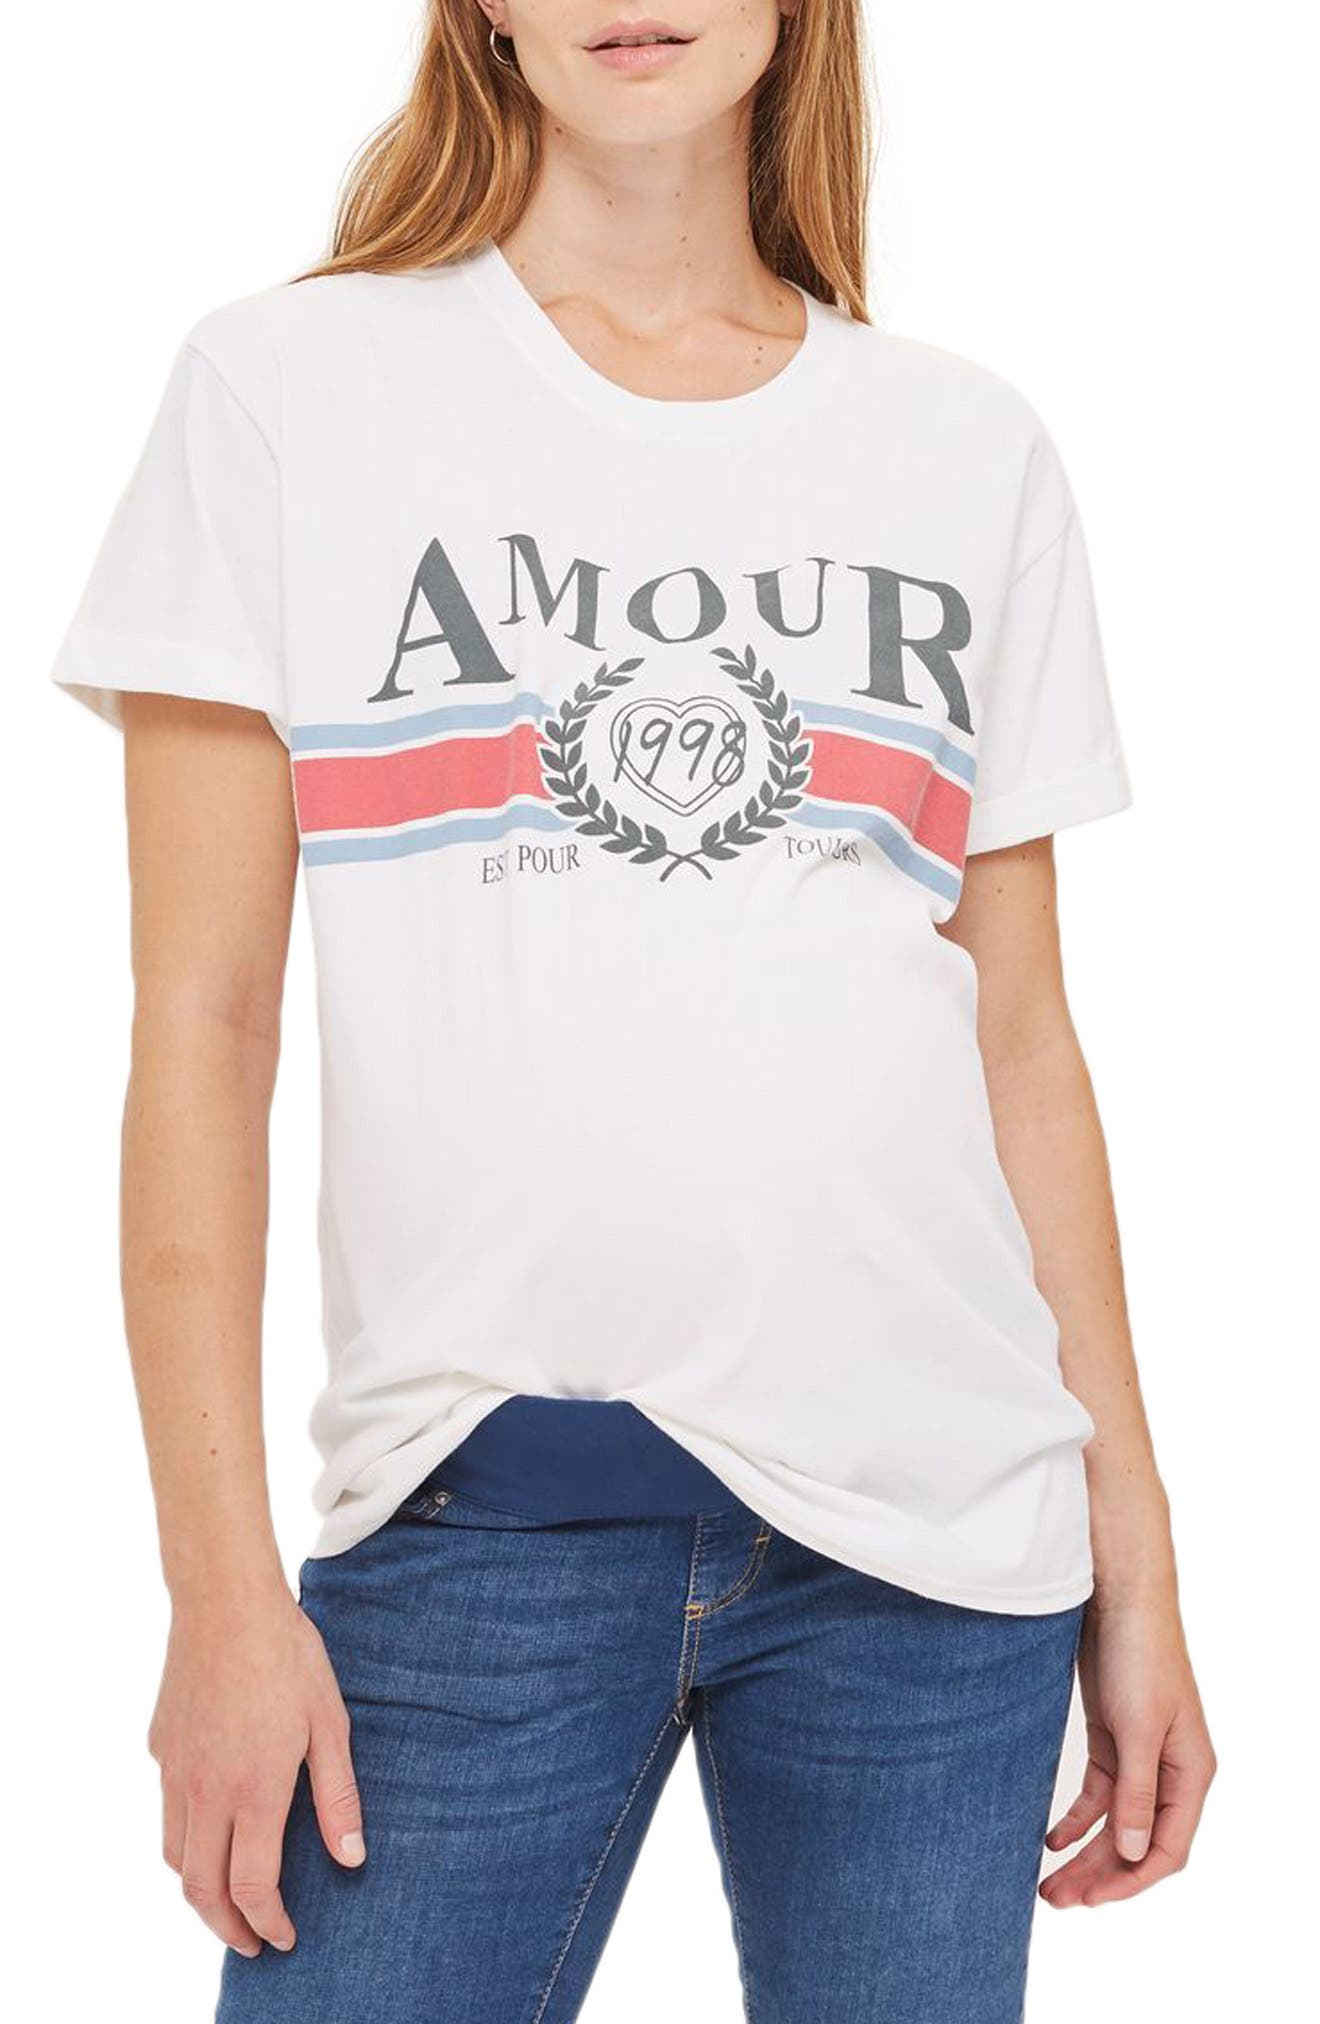 Topshop Amour Maternity Tee